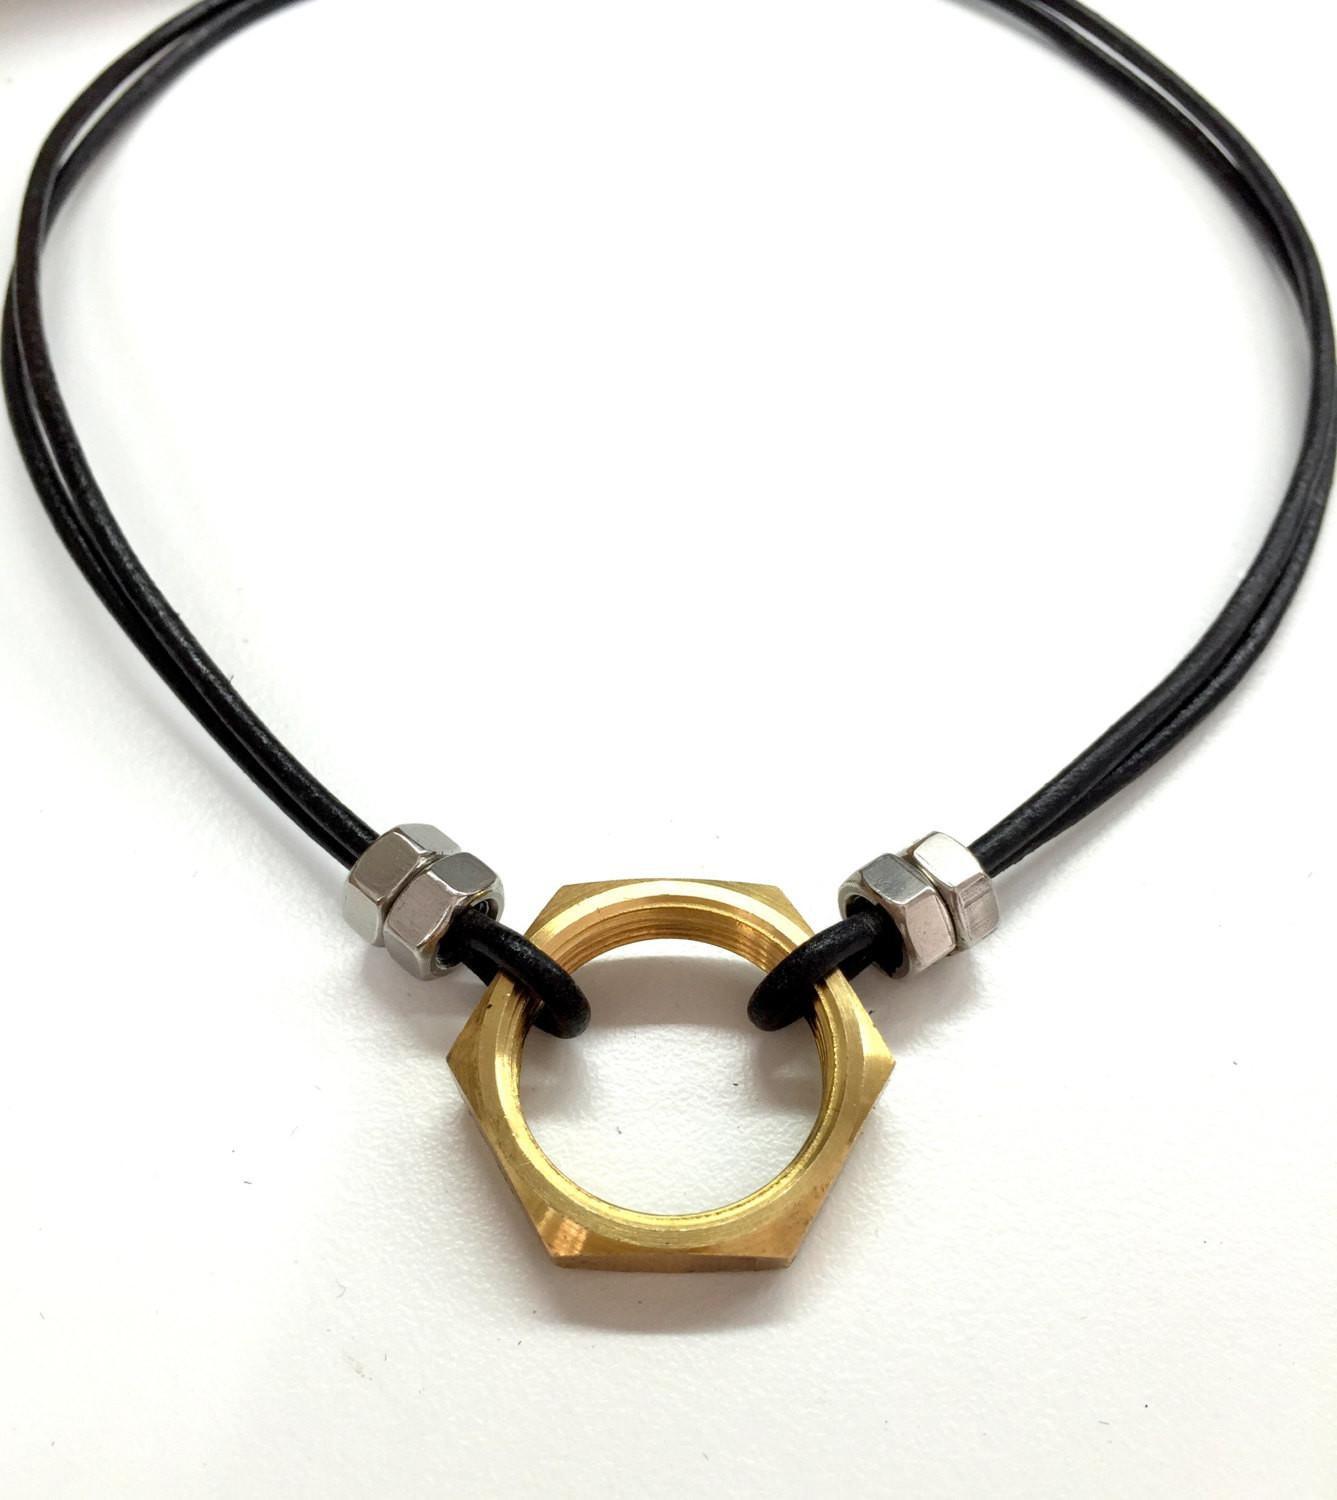 Cool Mens Necklace Hex Nut Black Leather